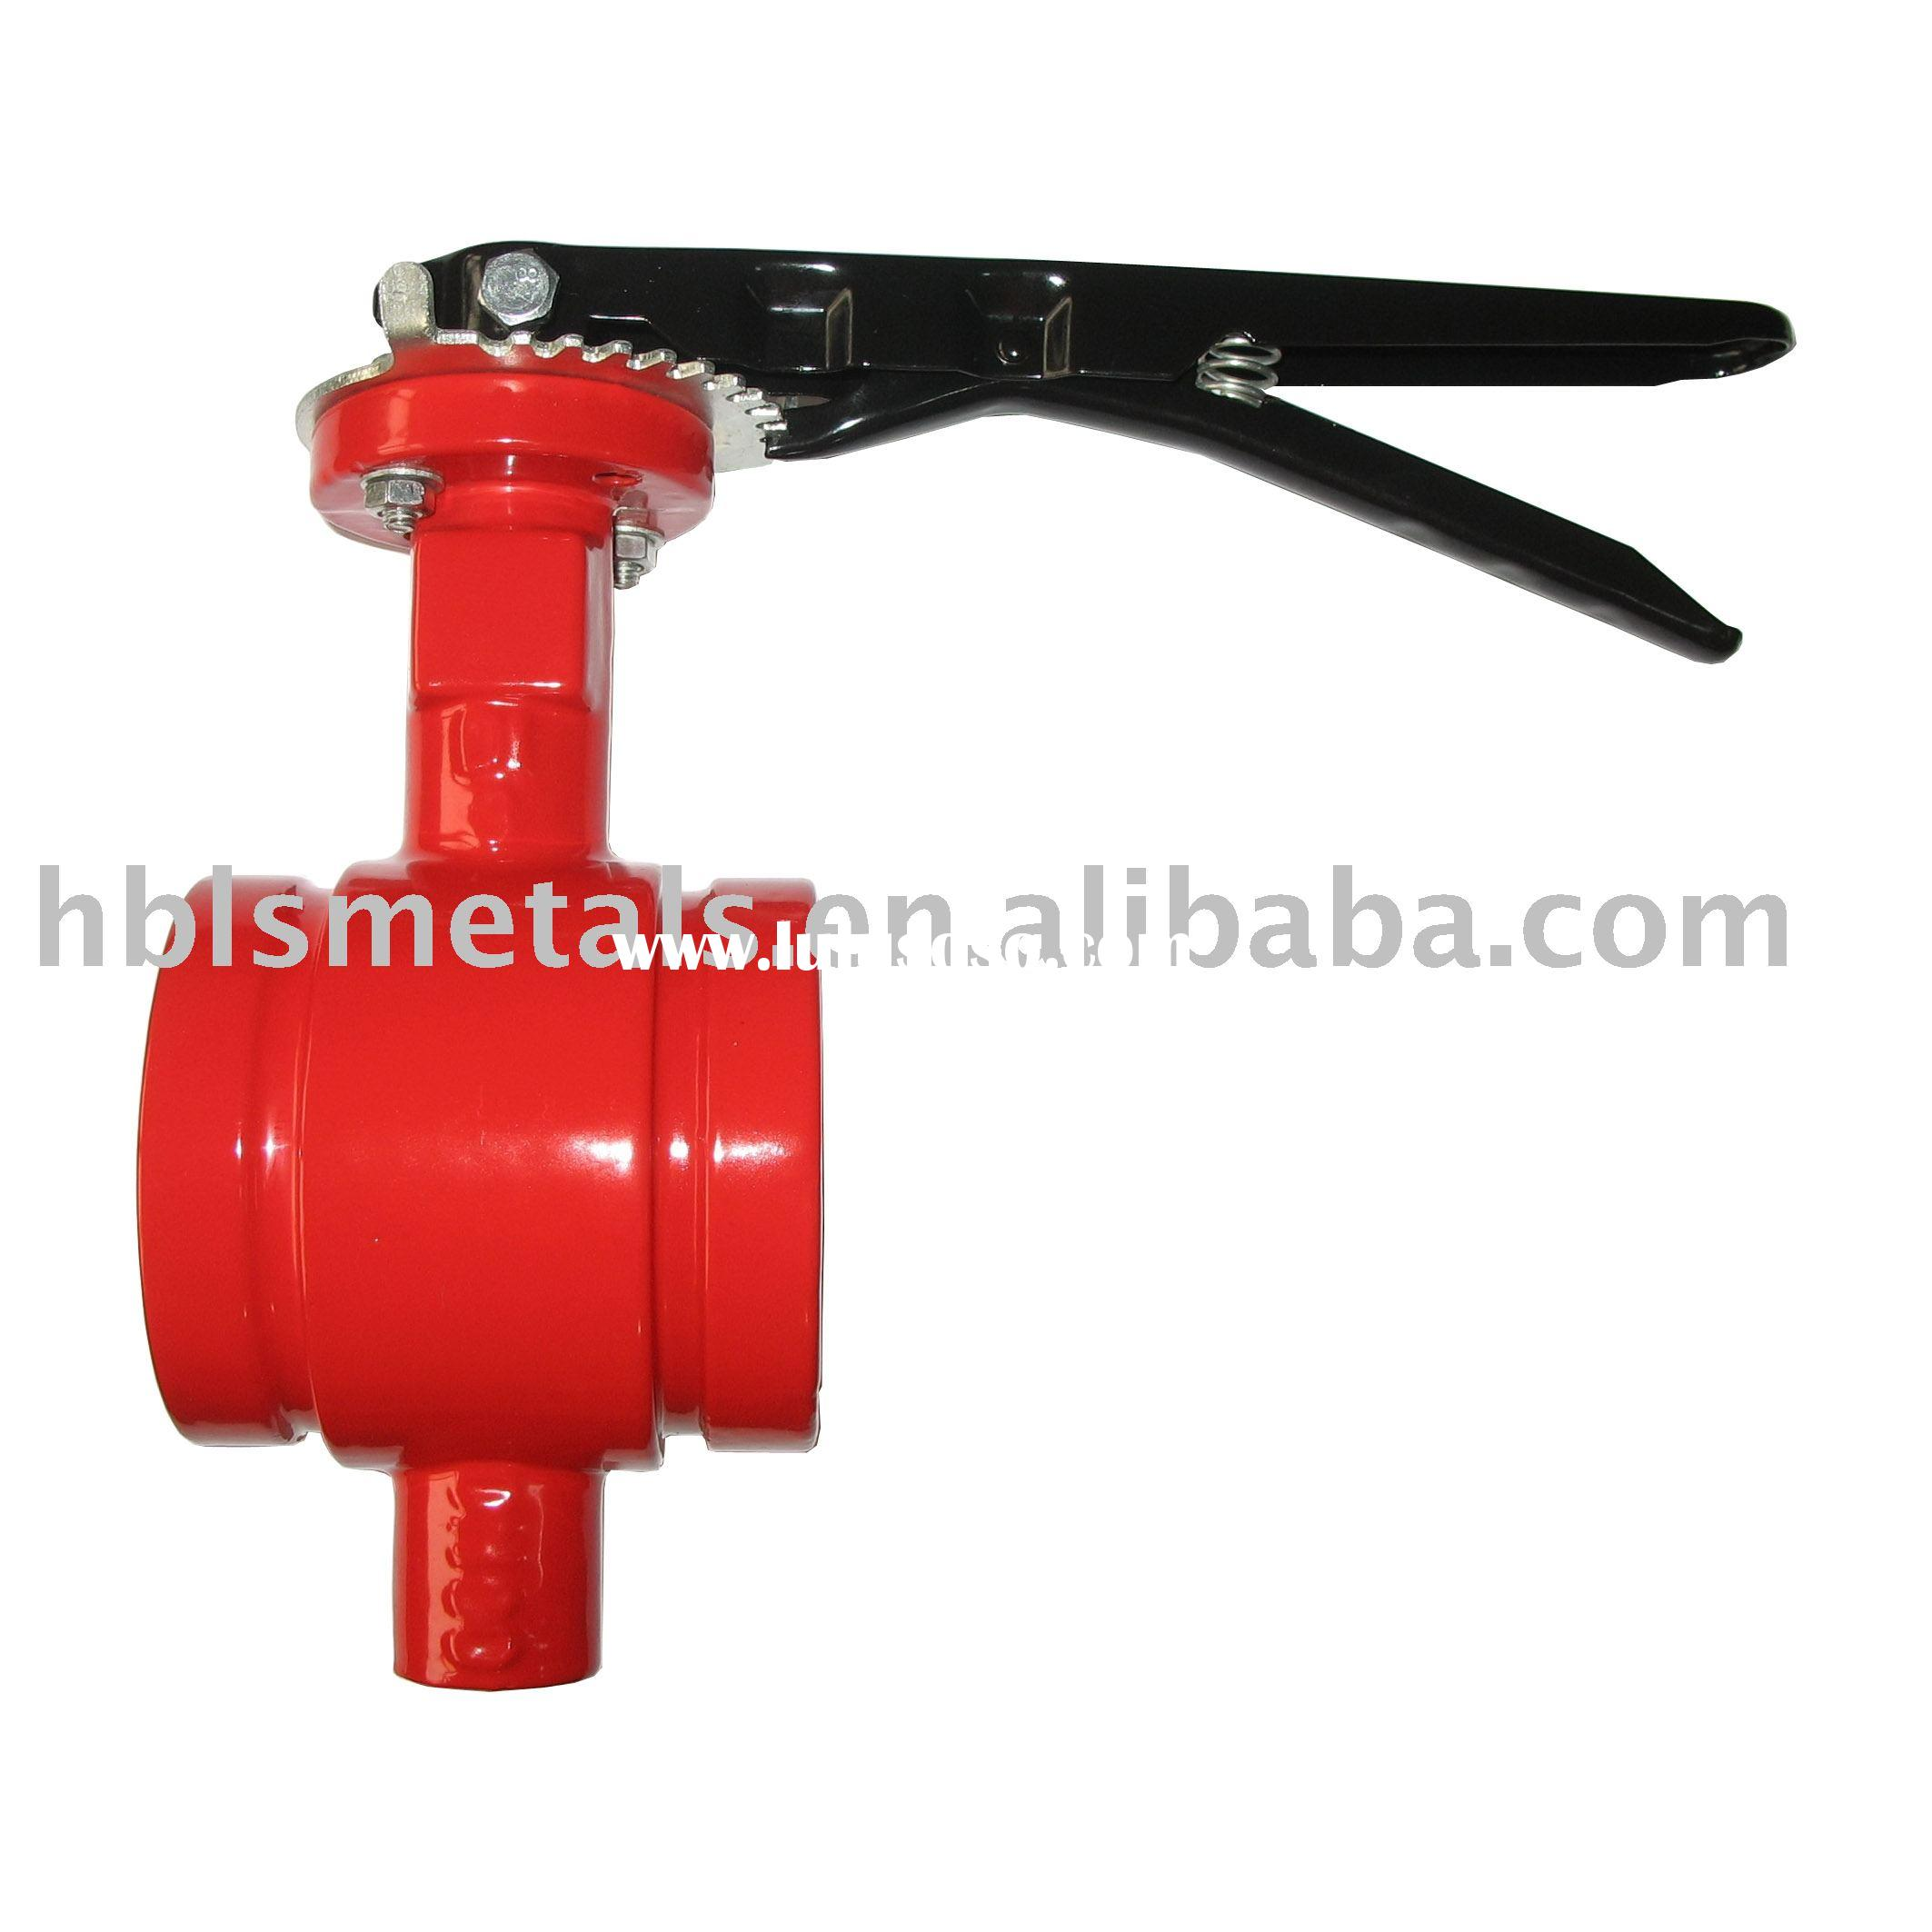 Nibco grooved end butterfly valve